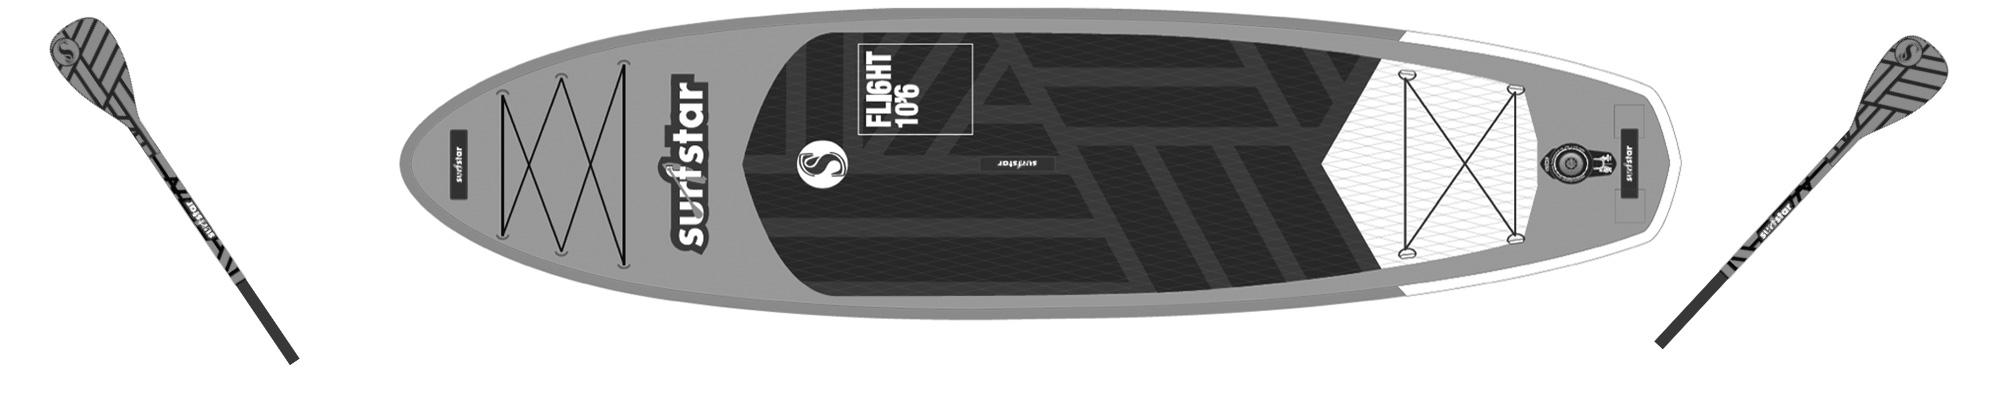 SURFSTAR - inflatable SUP Boards